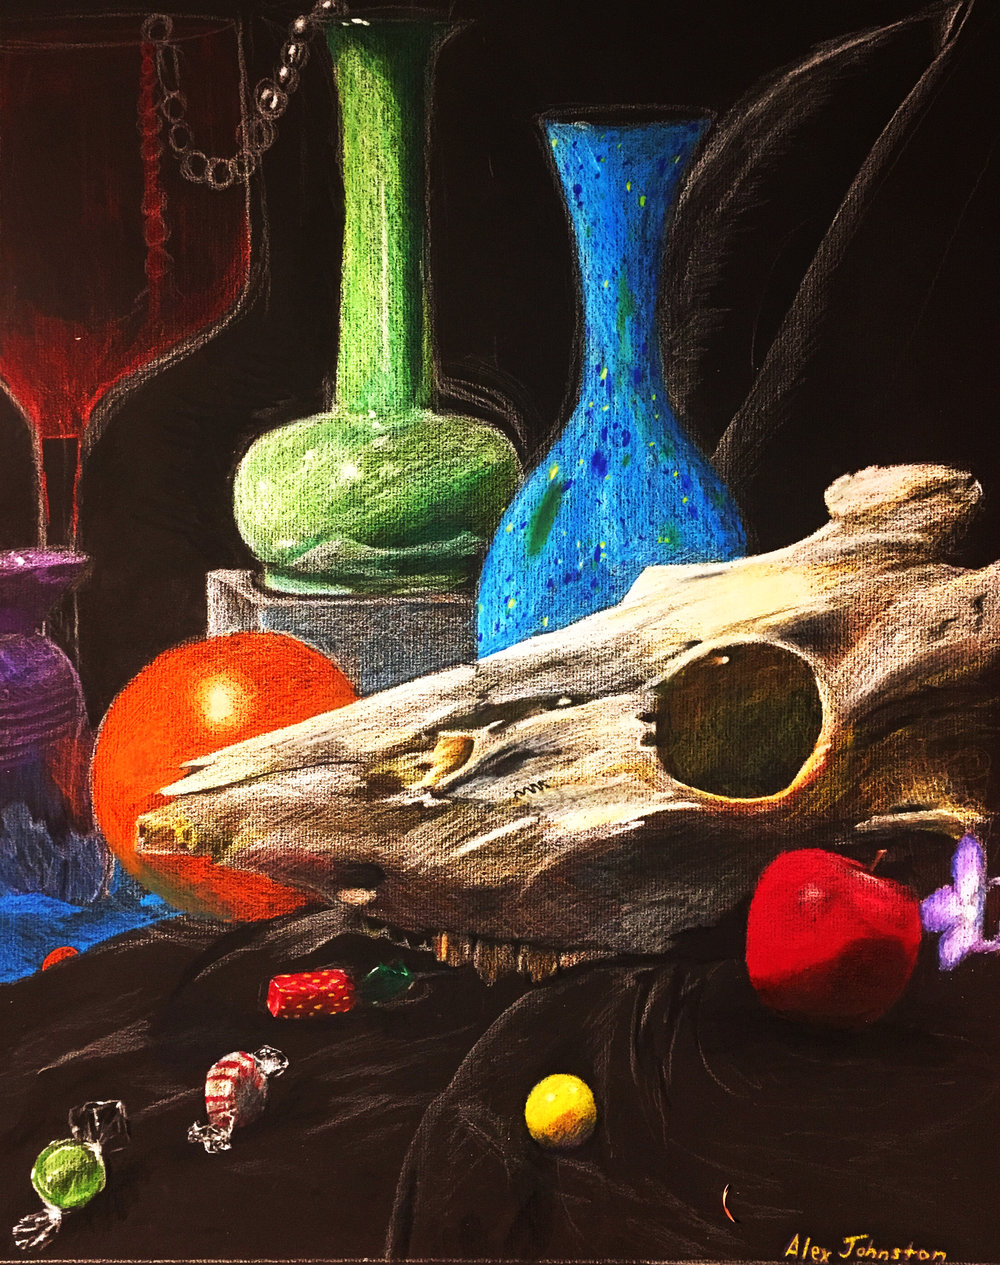 Direct Observational In-Class Still Life Drawing  Colored Pencil on Black Paper  2017